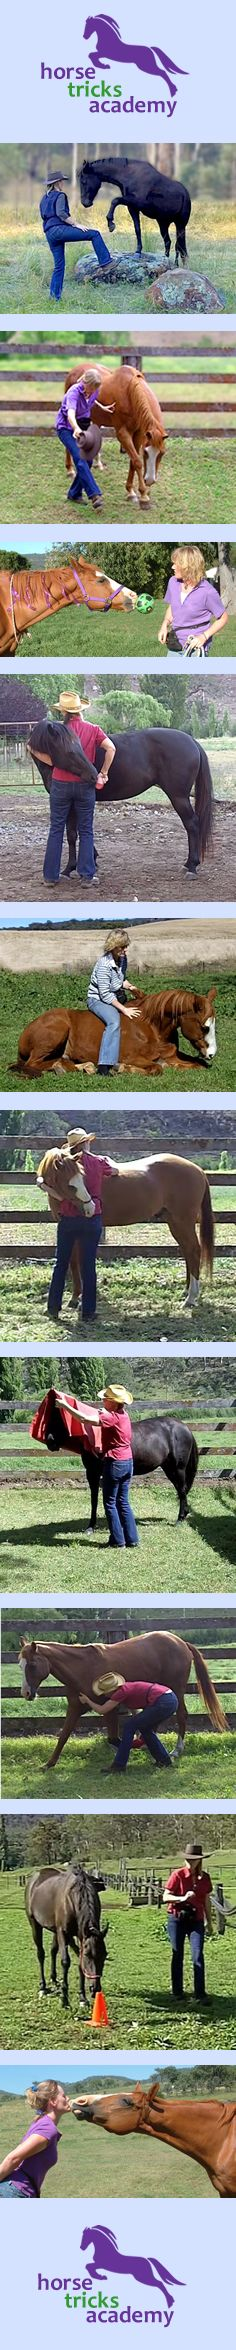 Horse Tricks Academy.  Online horse trick training.  Have fun.  Bond with your horse.